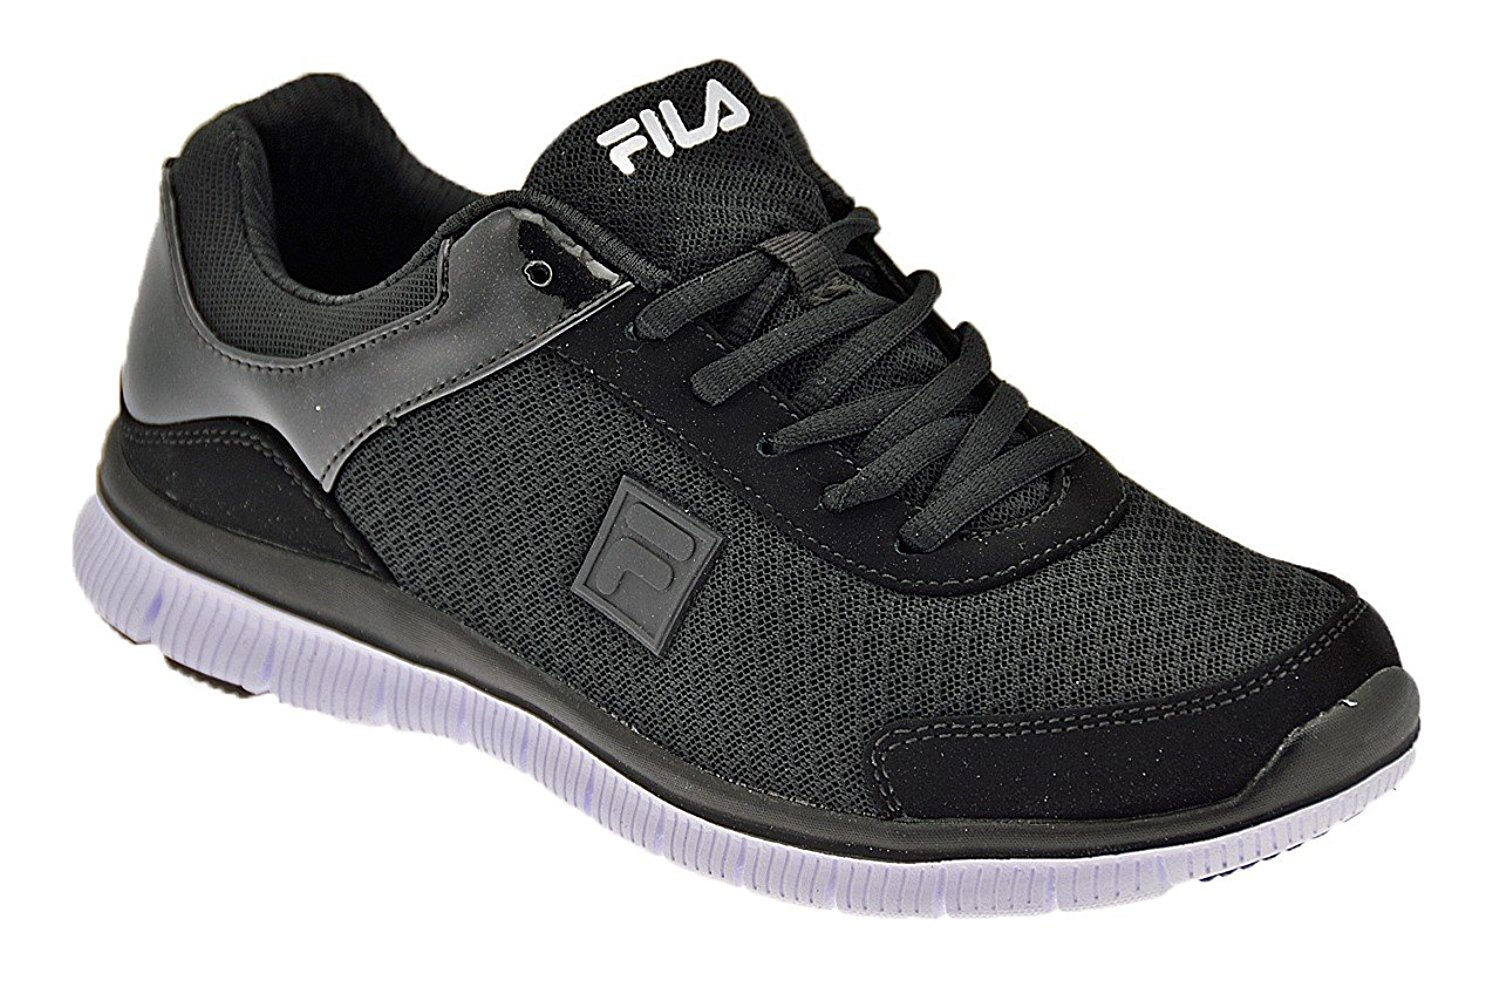 cheap fila